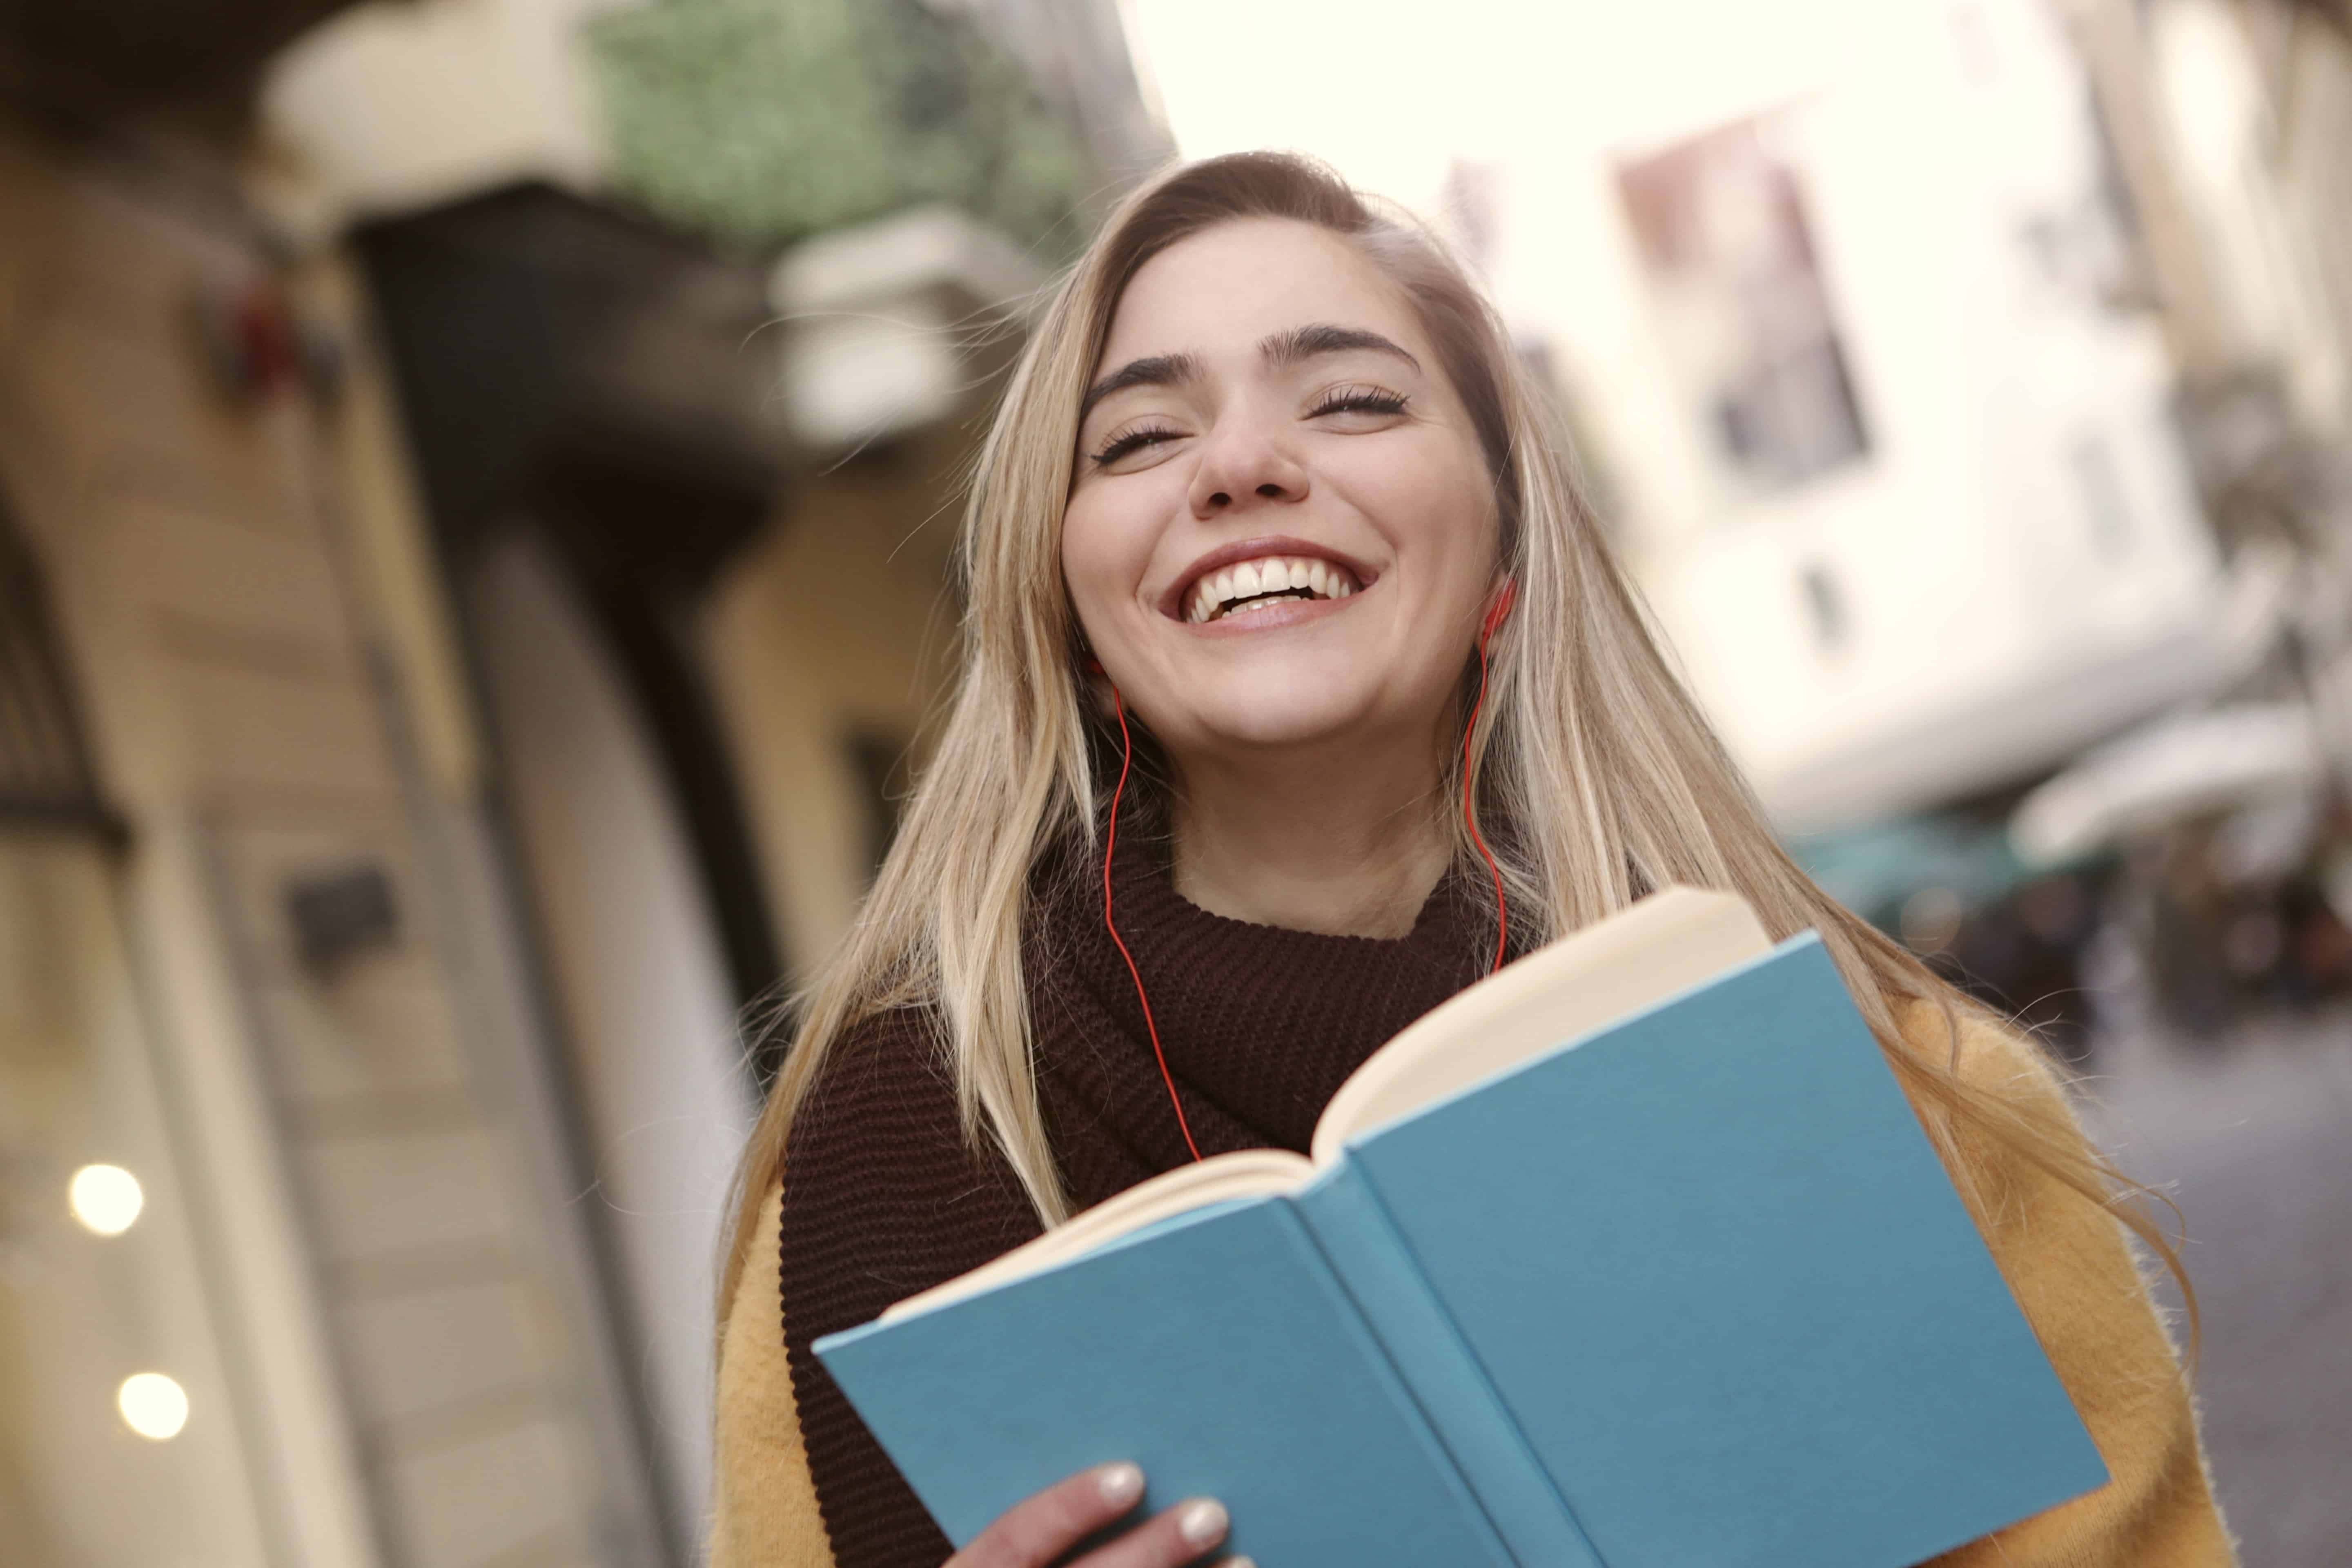 A woman practicing good daily habits by reading and being outside.